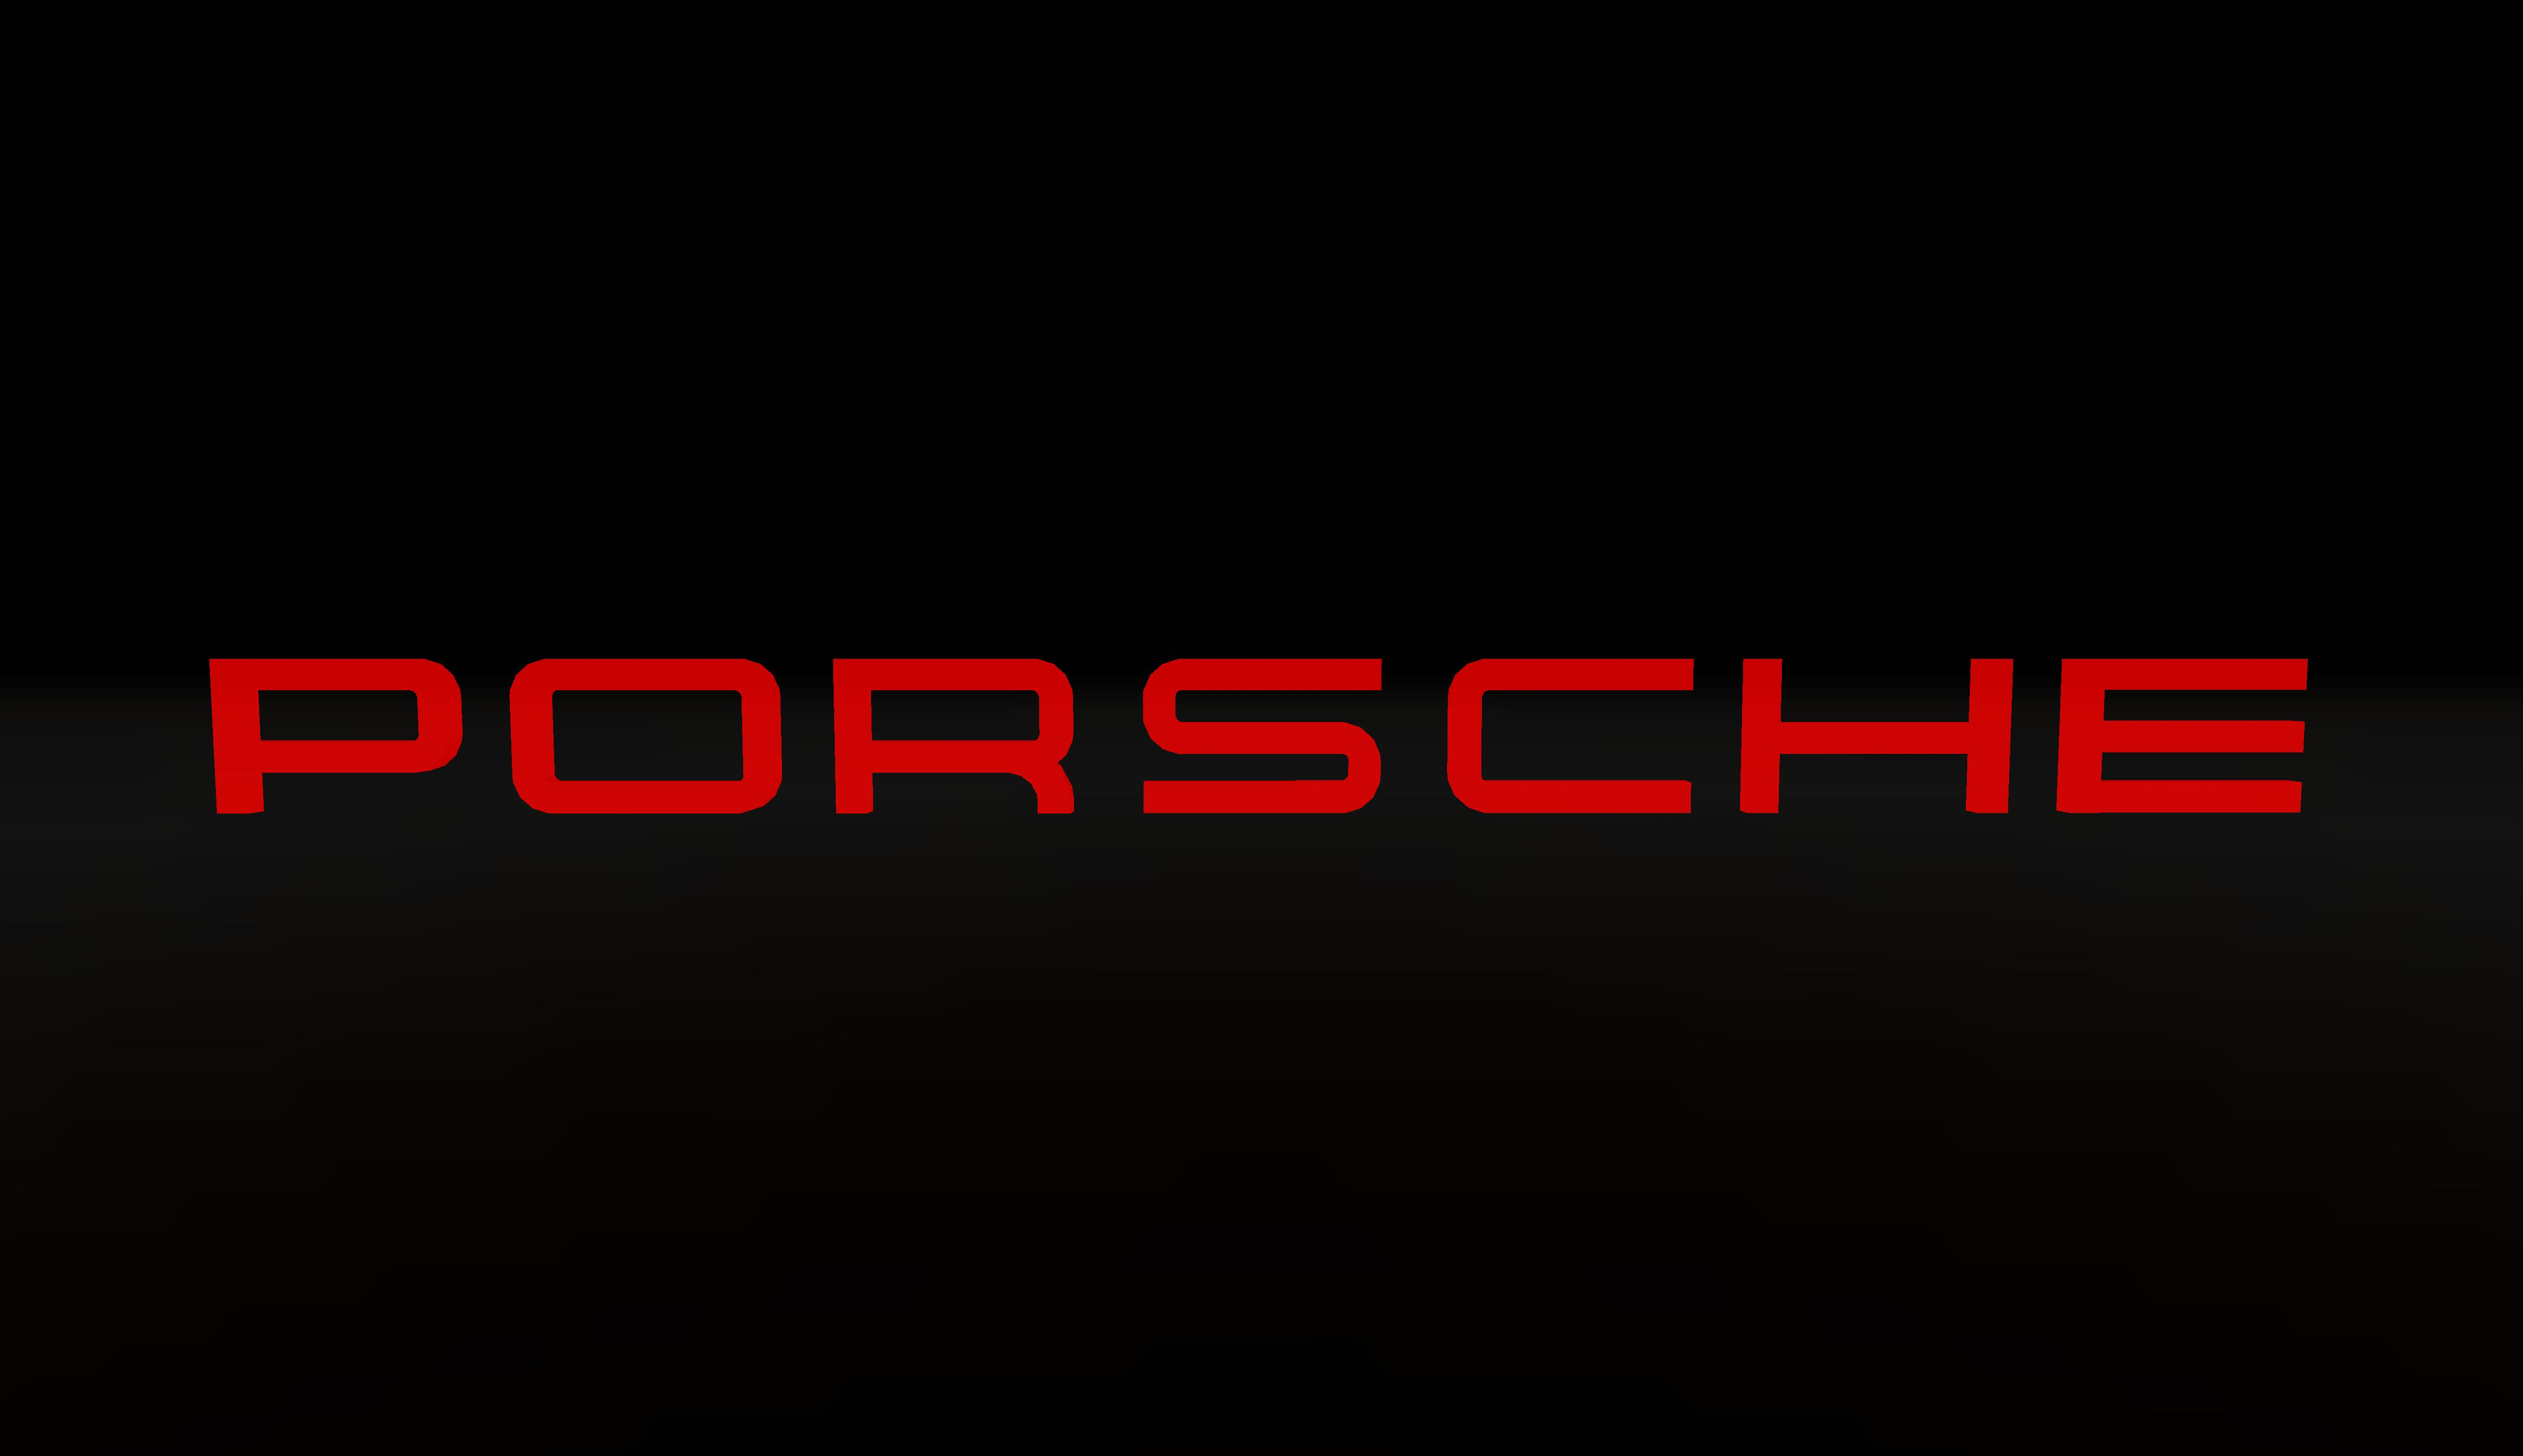 Porsche Wallpaper by ez-bone on DeviantArt